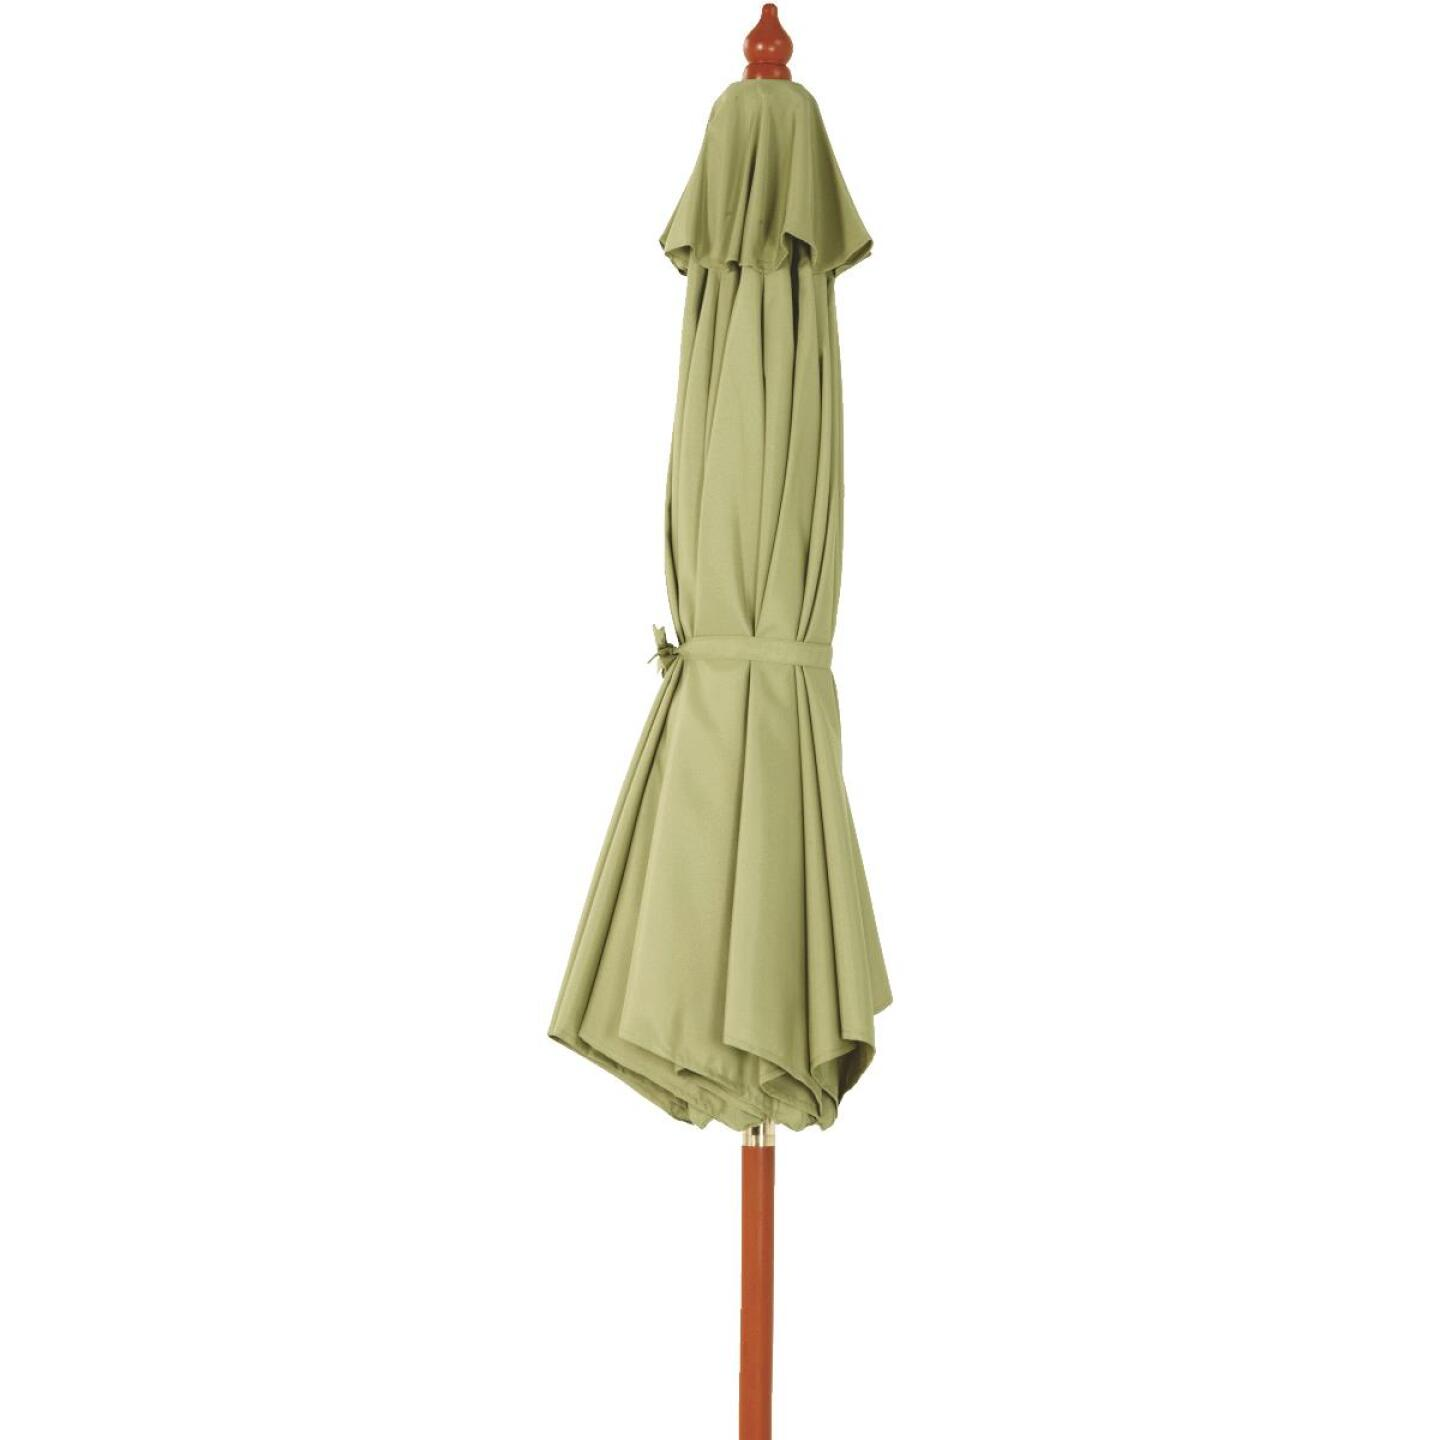 Outdoor Expressions 9 Ft. Pulley Sage Market Patio Umbrella with Brass Plated Hardware Image 4